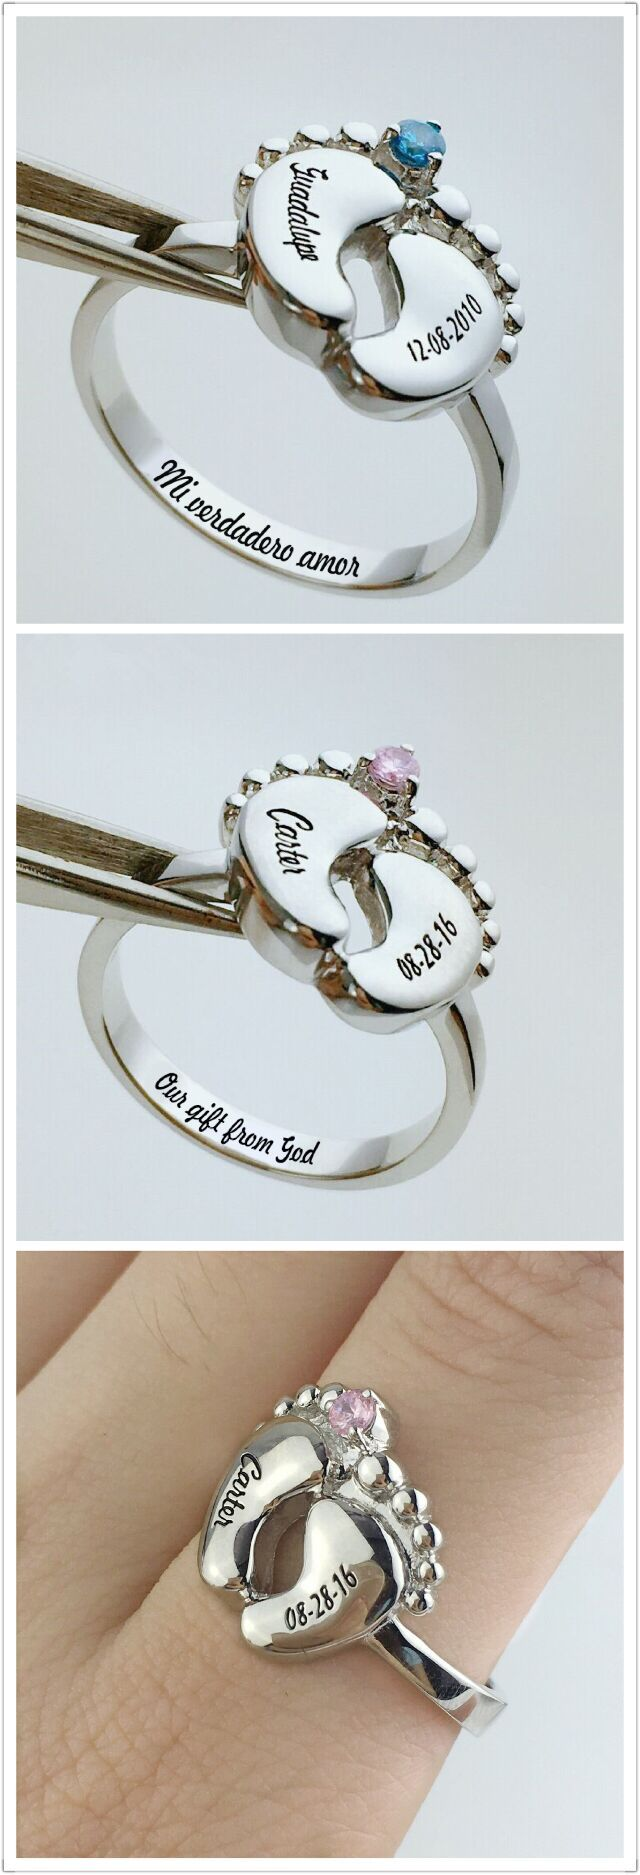 product baby hand personalised and original rings by footprint print silver foot on keyring touchonsilver touch